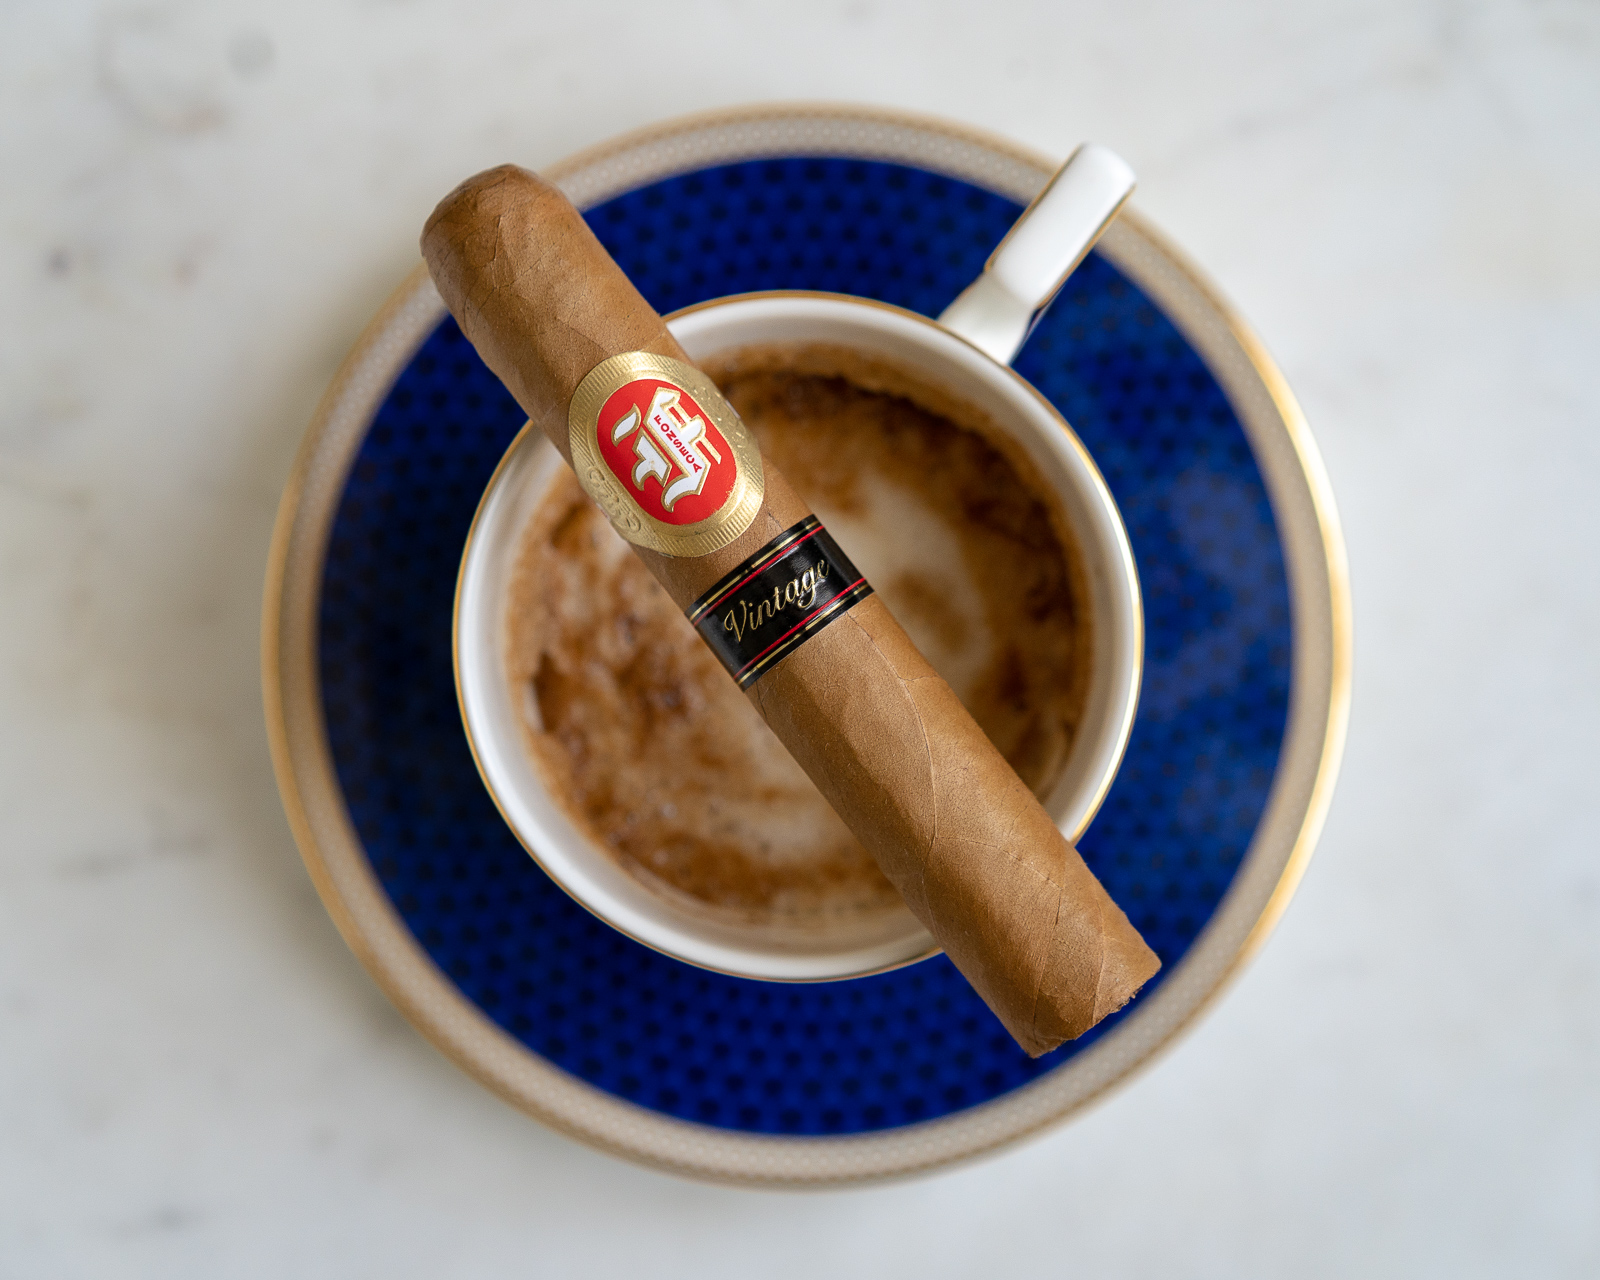 Fonseca Vintage robusto review